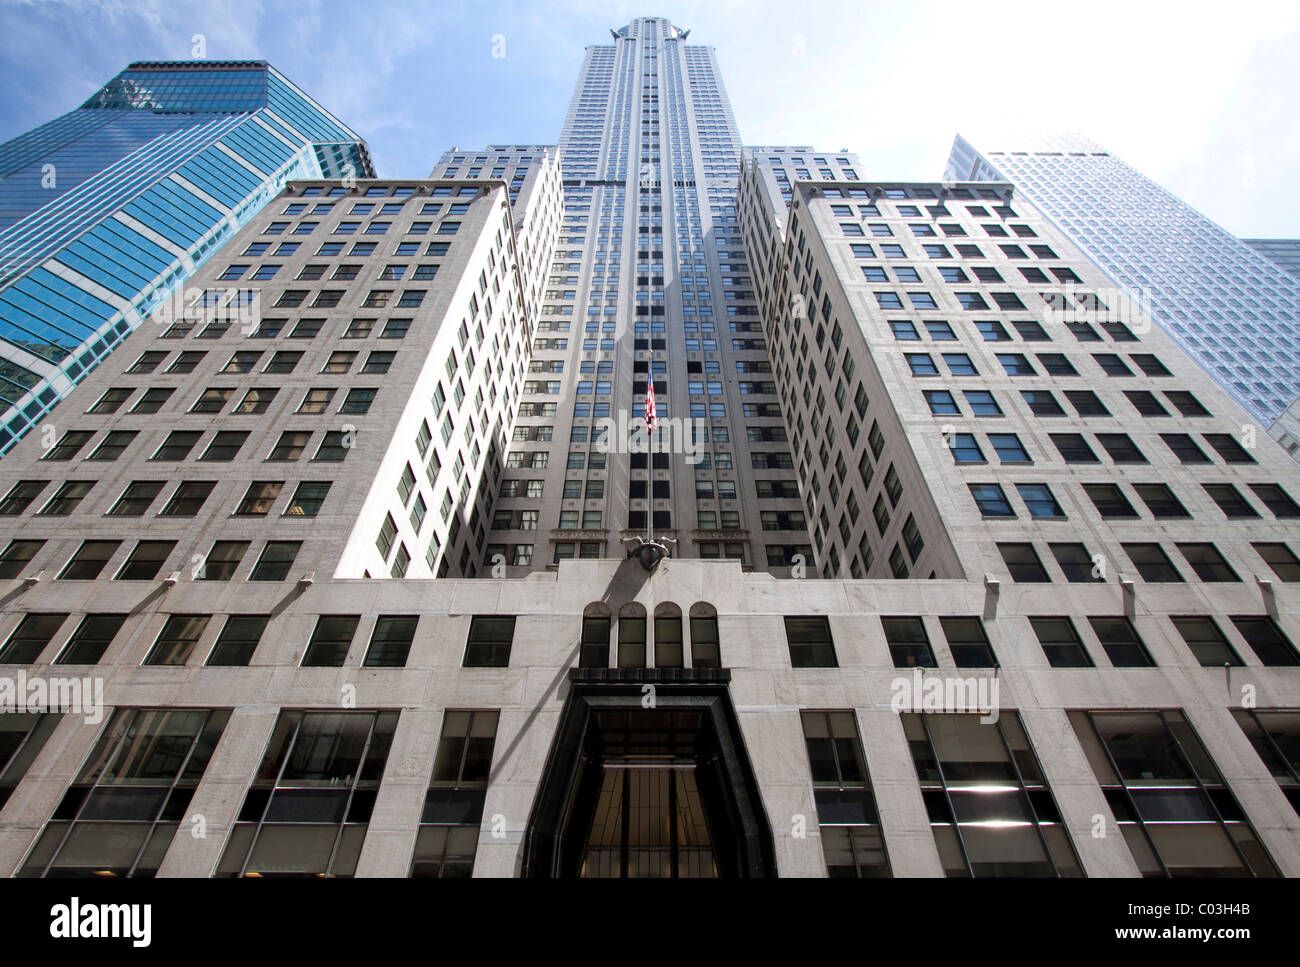 Chrysler Building, Manhattan, New York, USA - Stock Image